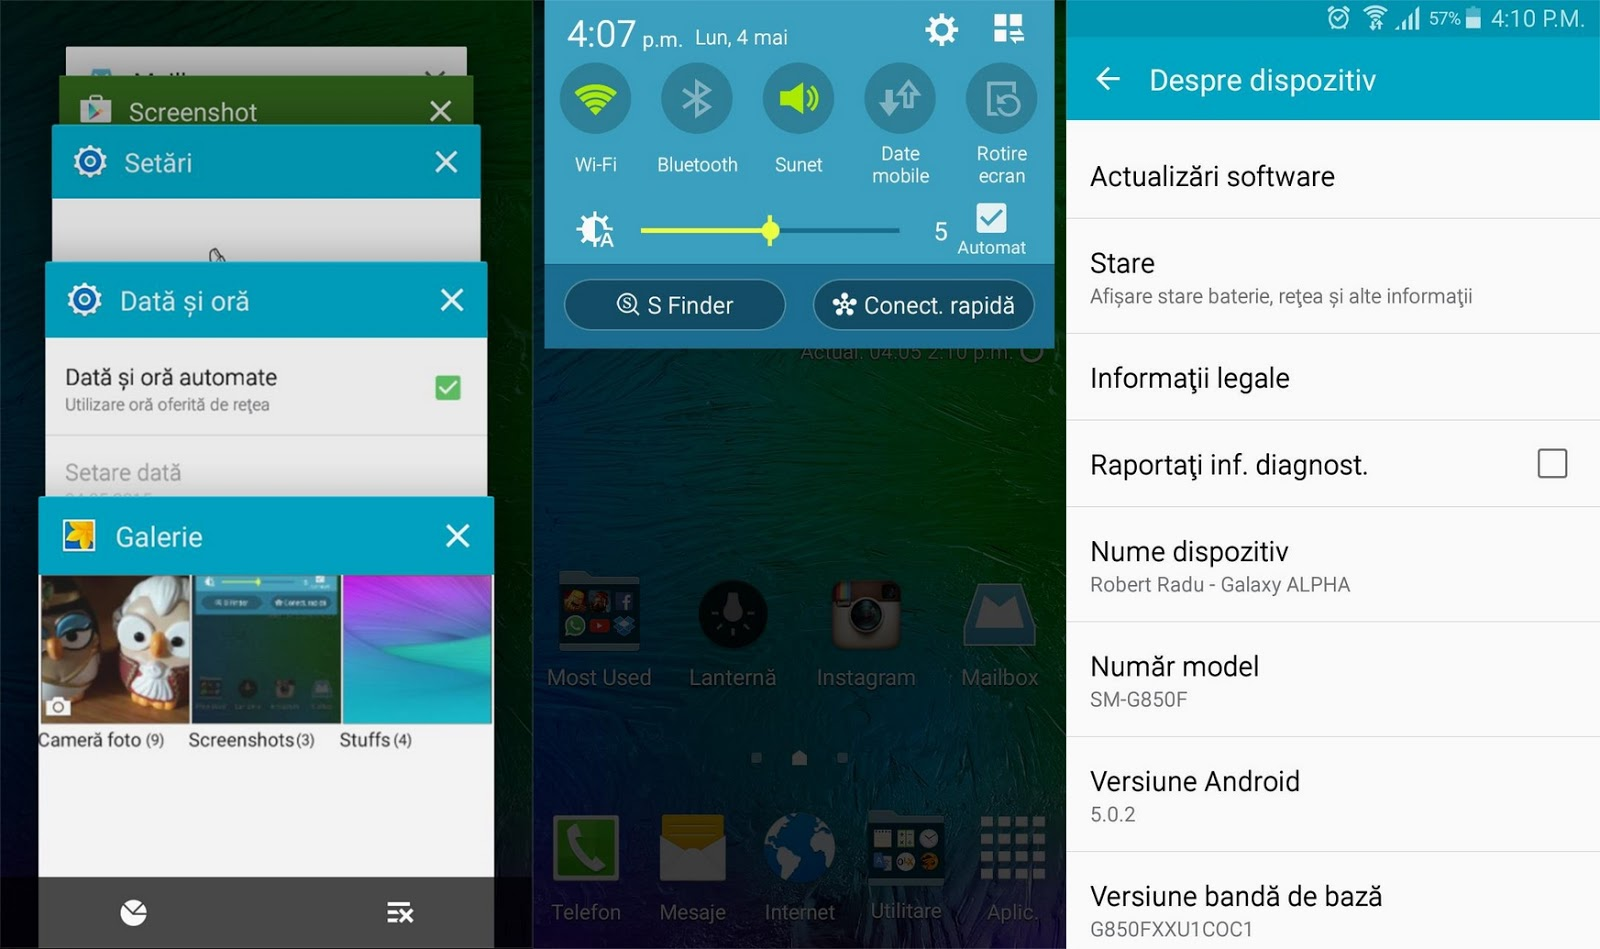 Samsung Galaxy Alpha Android 5.0 Lollipop